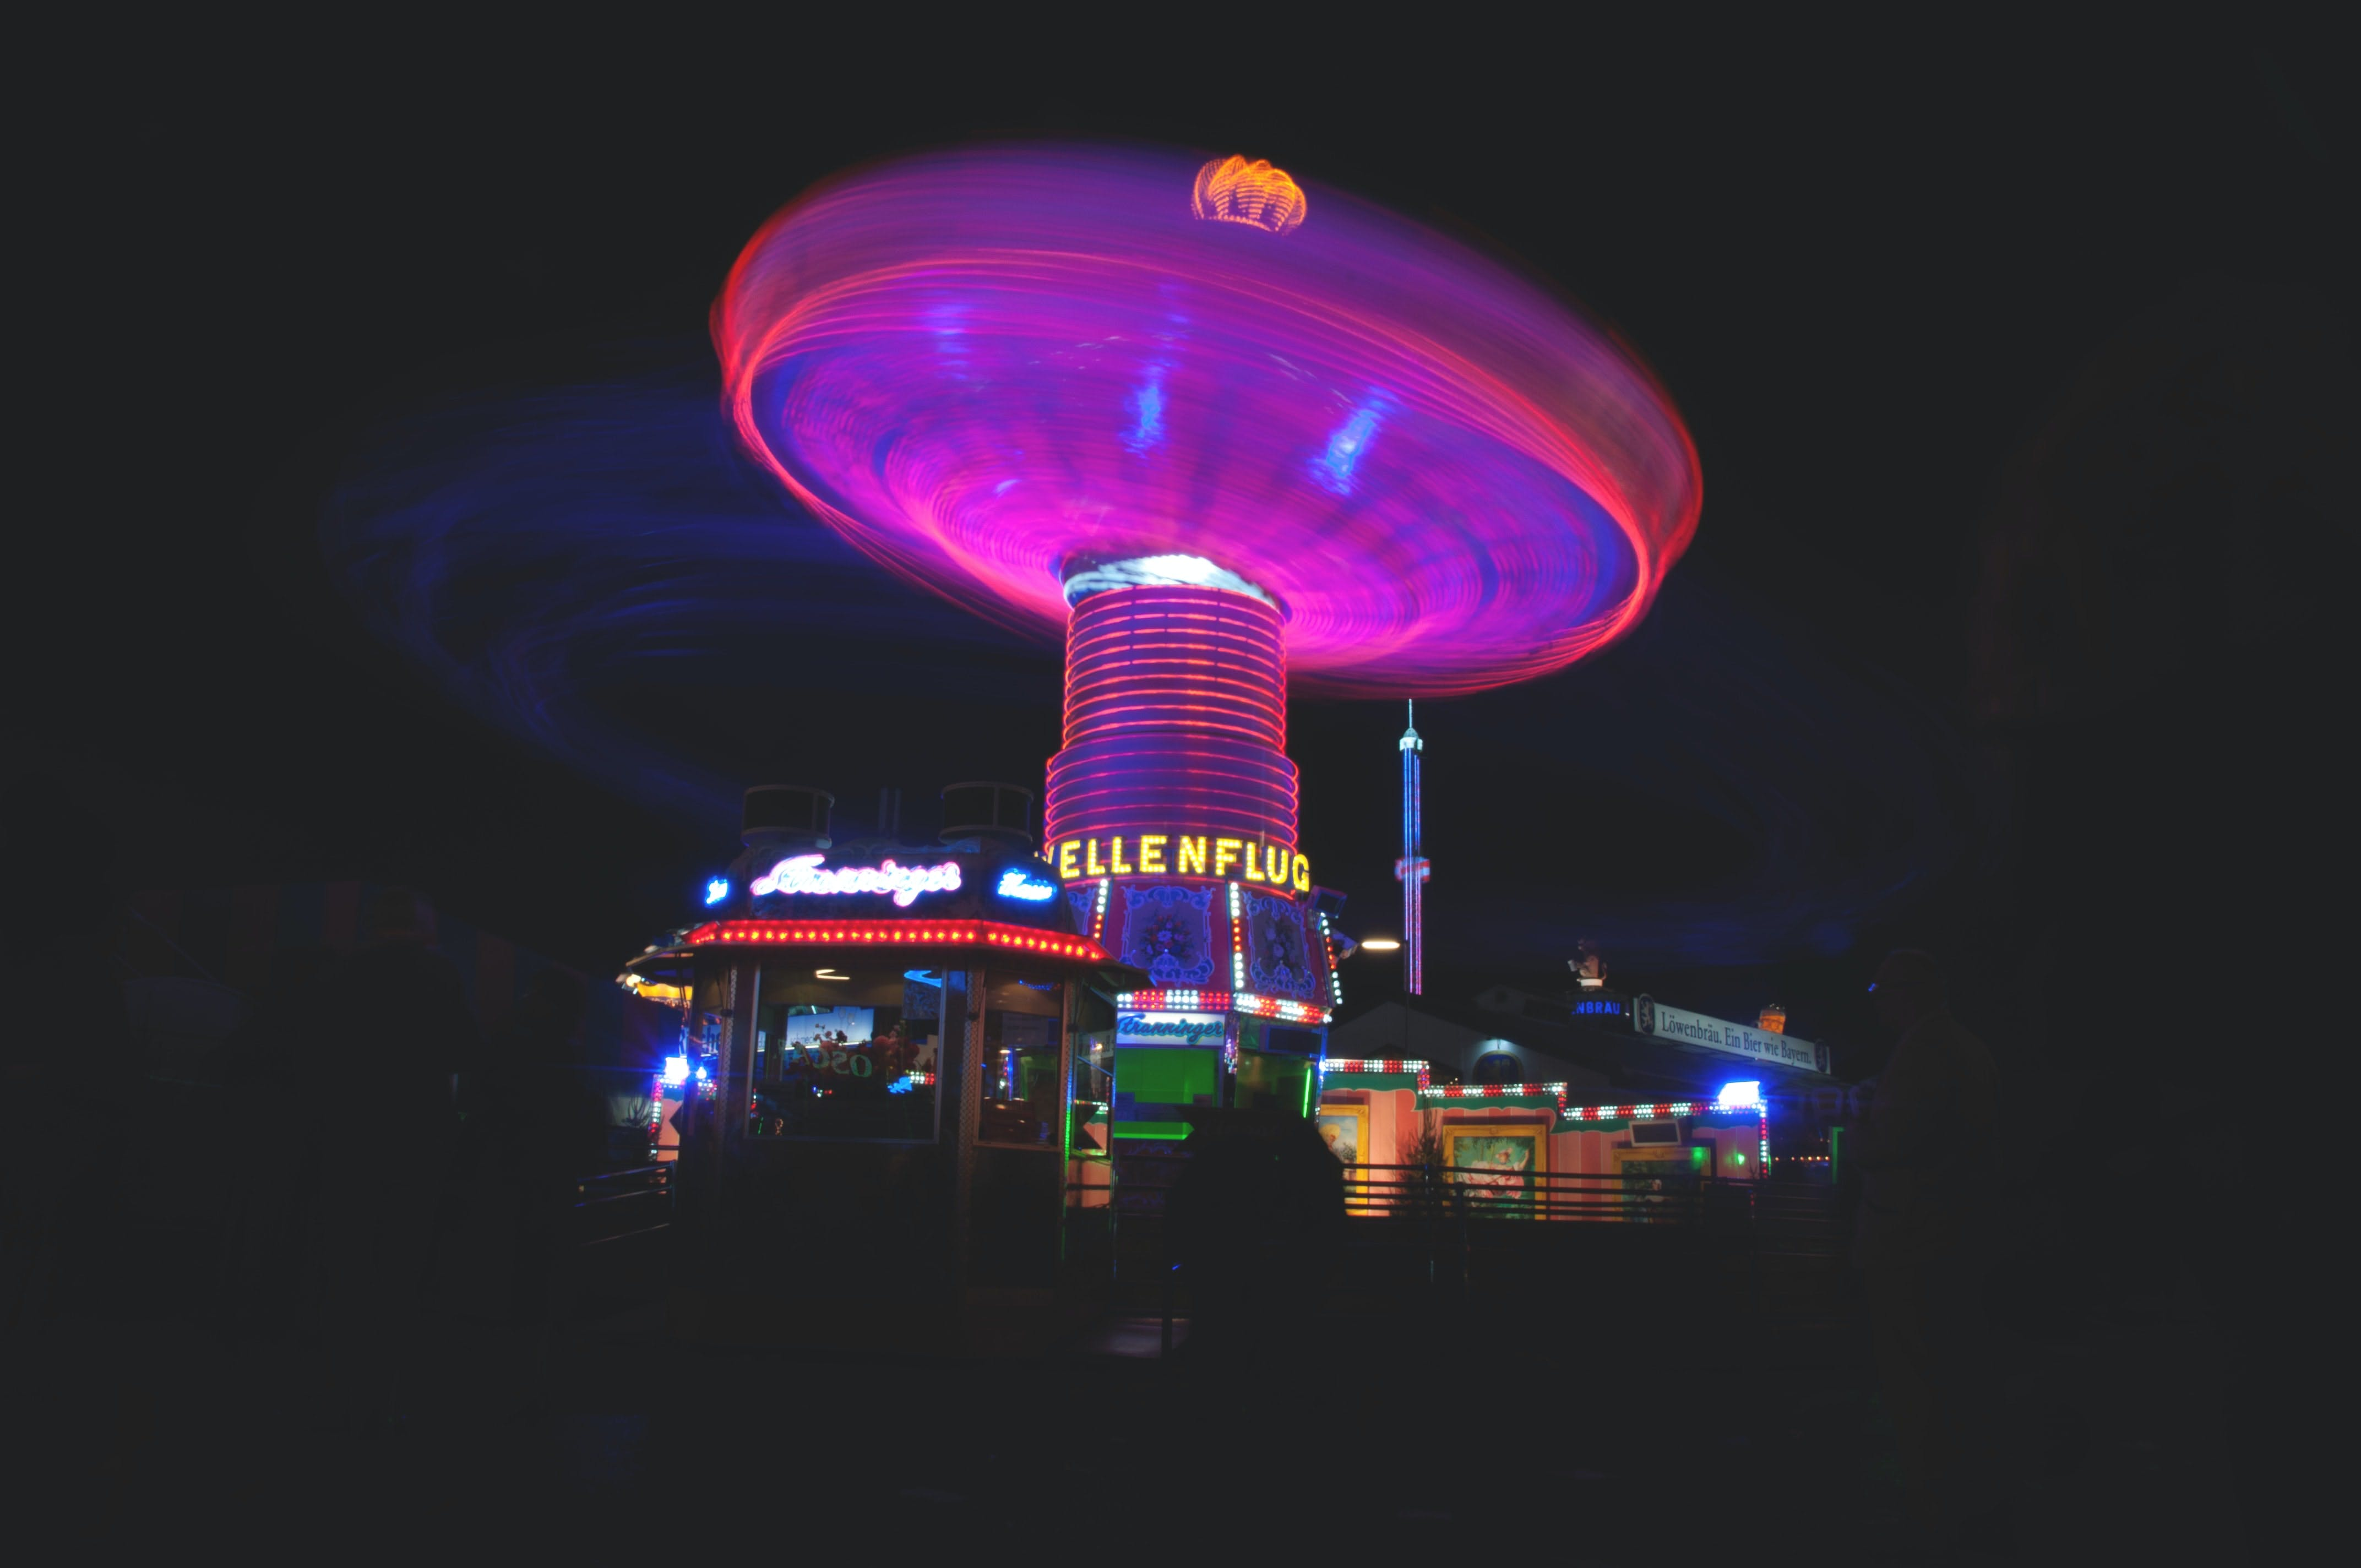 photo of amusement ride at oktoberfest during the nighttime hours